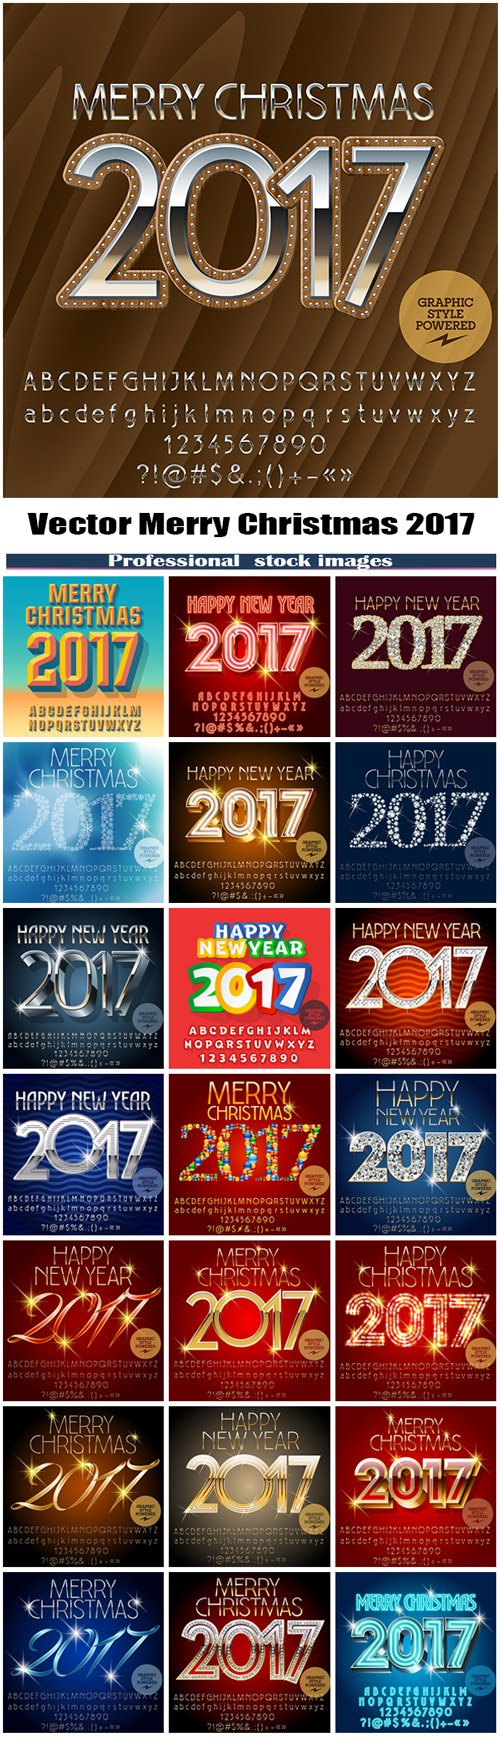 Vector Merry Christmas 2017 greeting card with set of letters, symbols and numbers